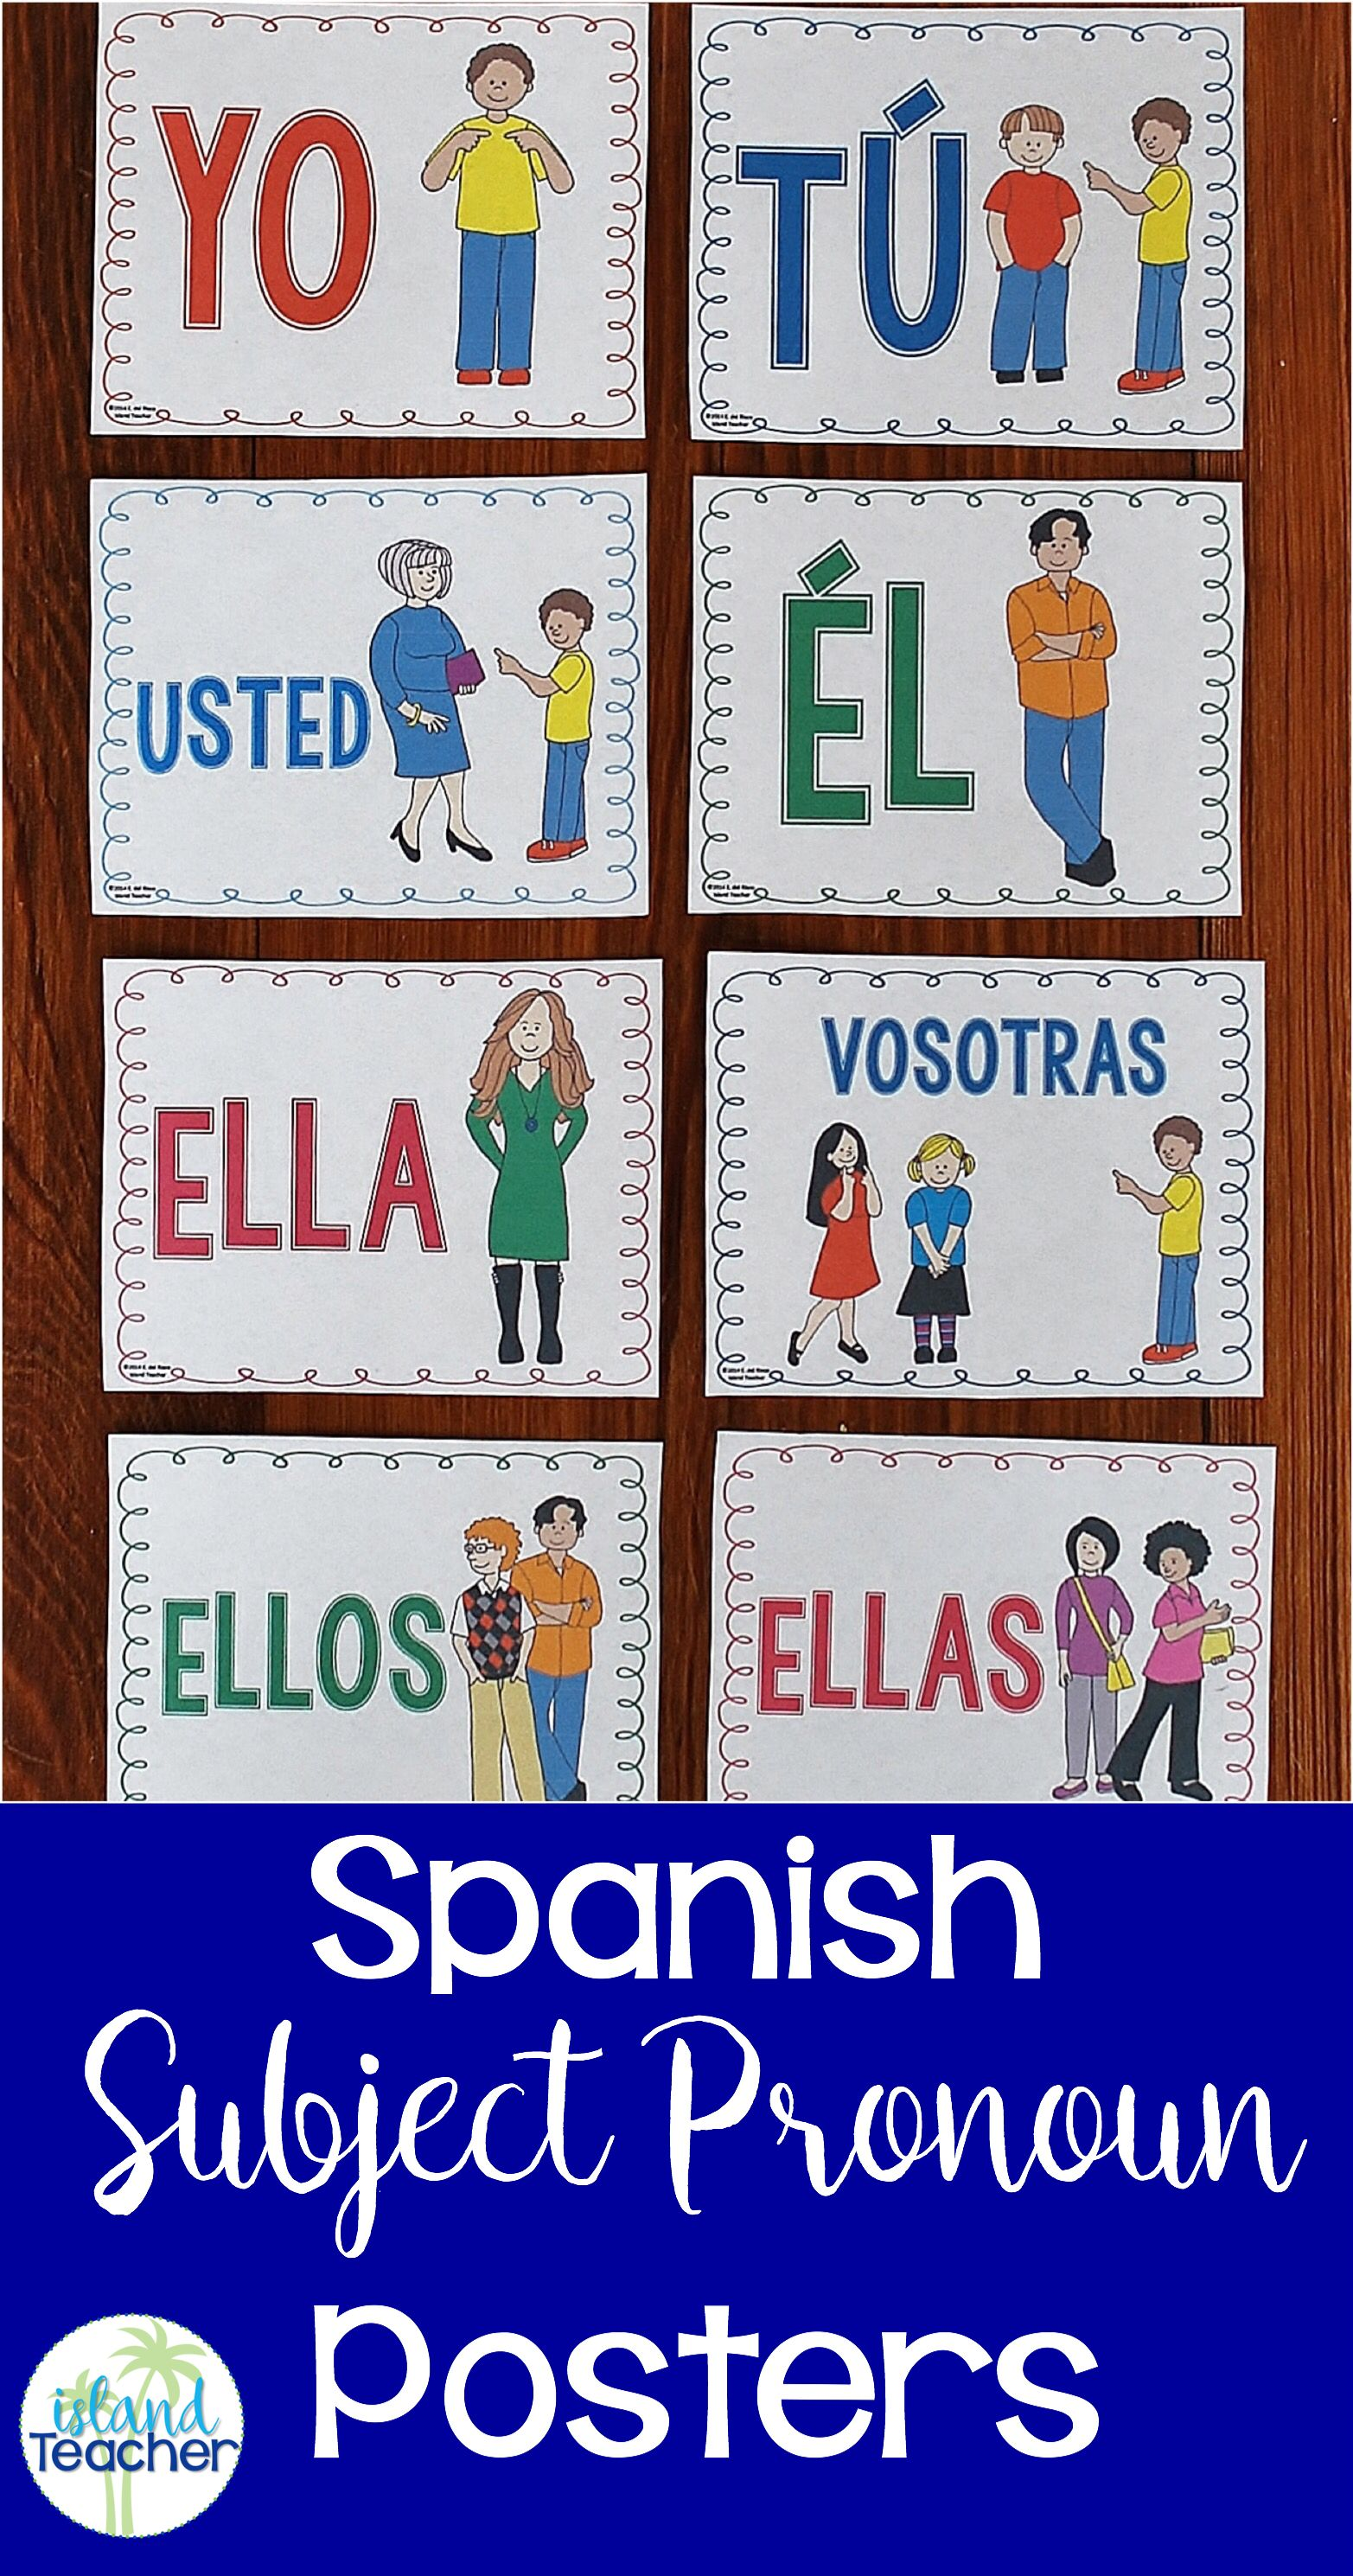 Poster In Spanish Spanish Subject Pronoun Posters Island Teacher Resources